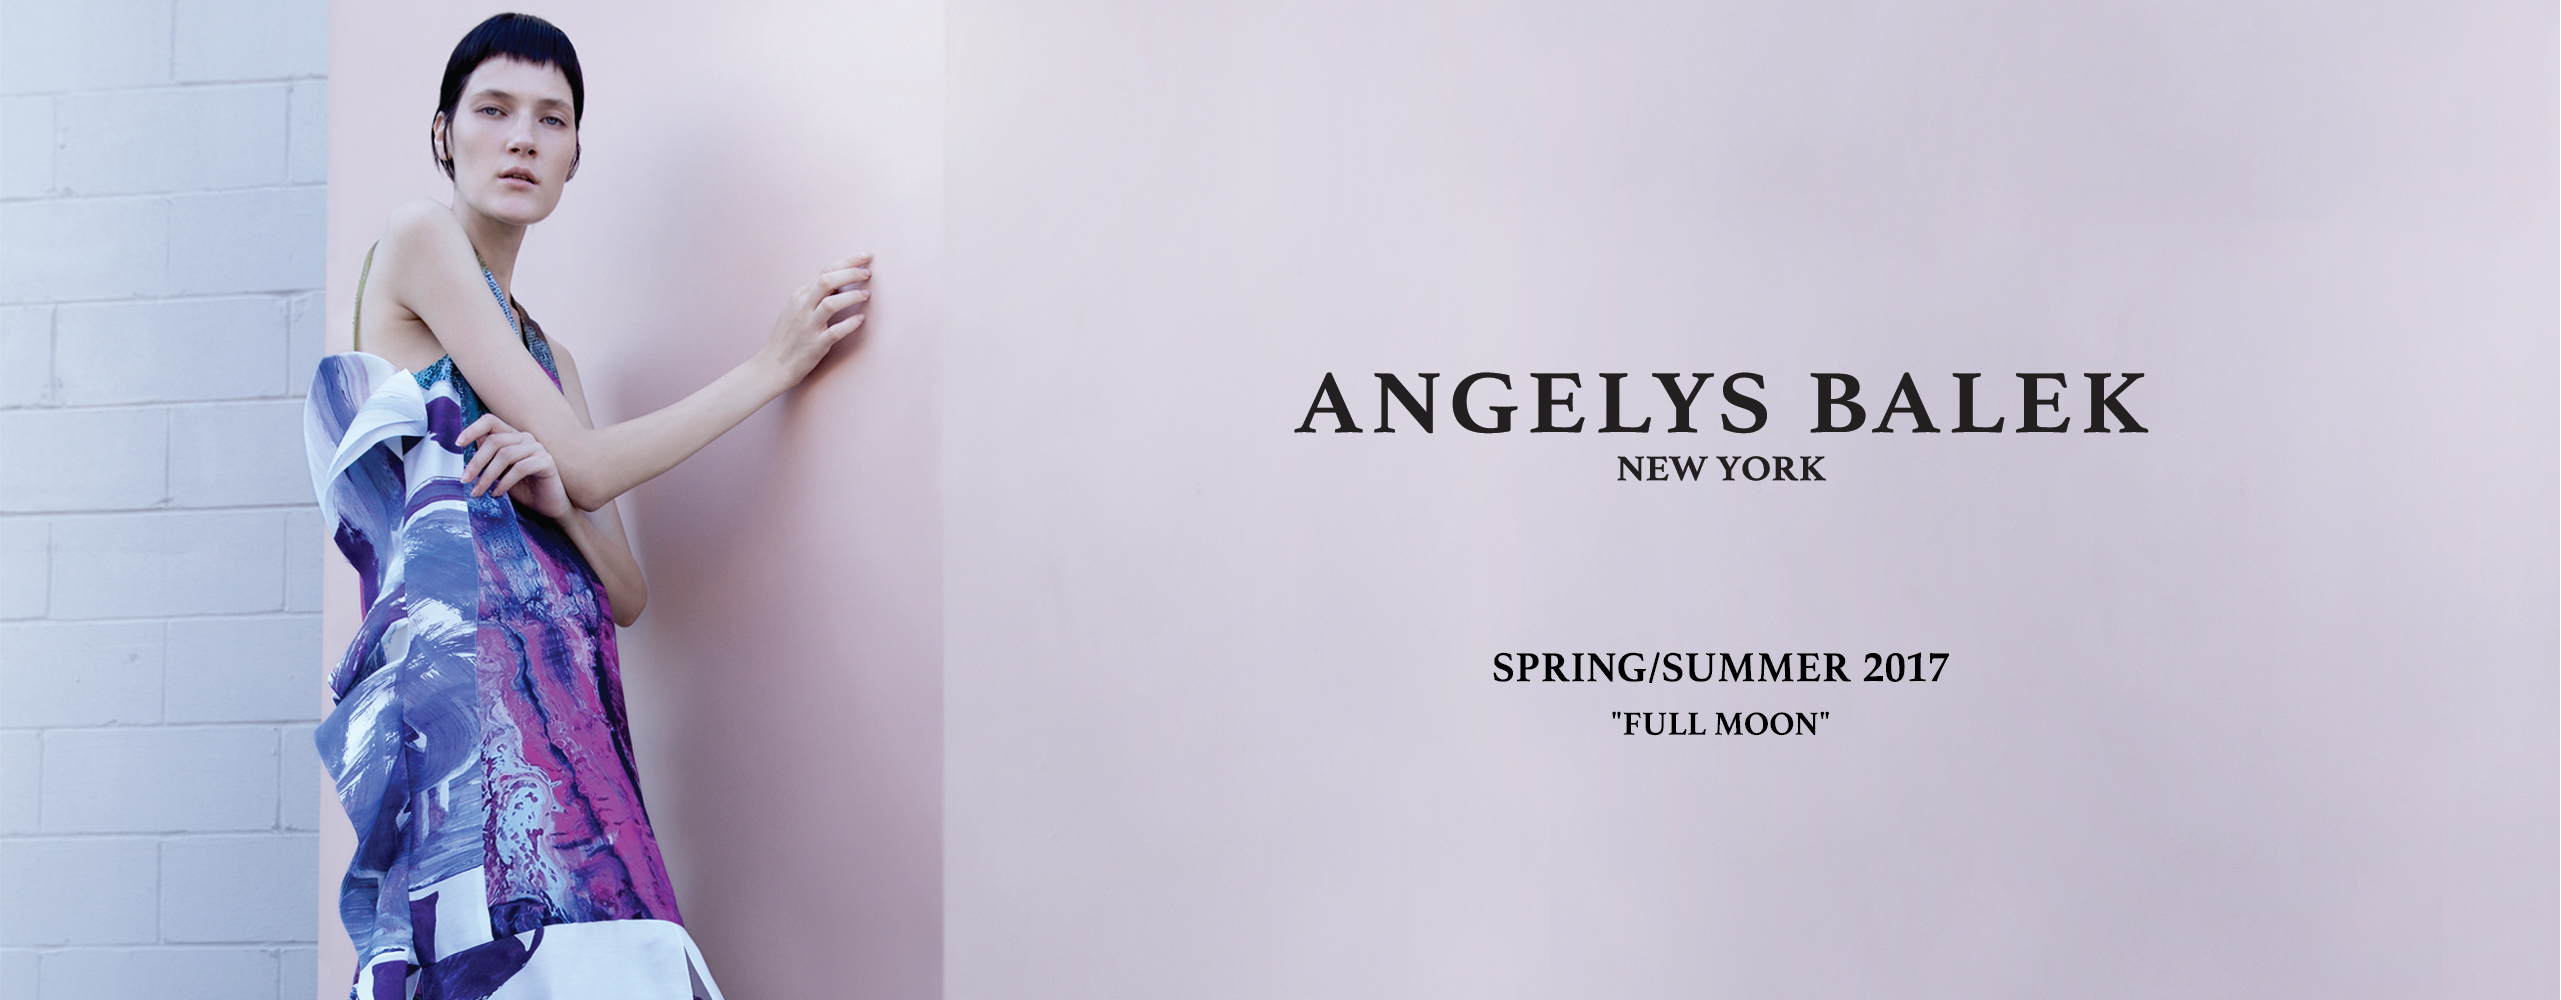 Angelys Balek New York, Fashion, Fashion Trend